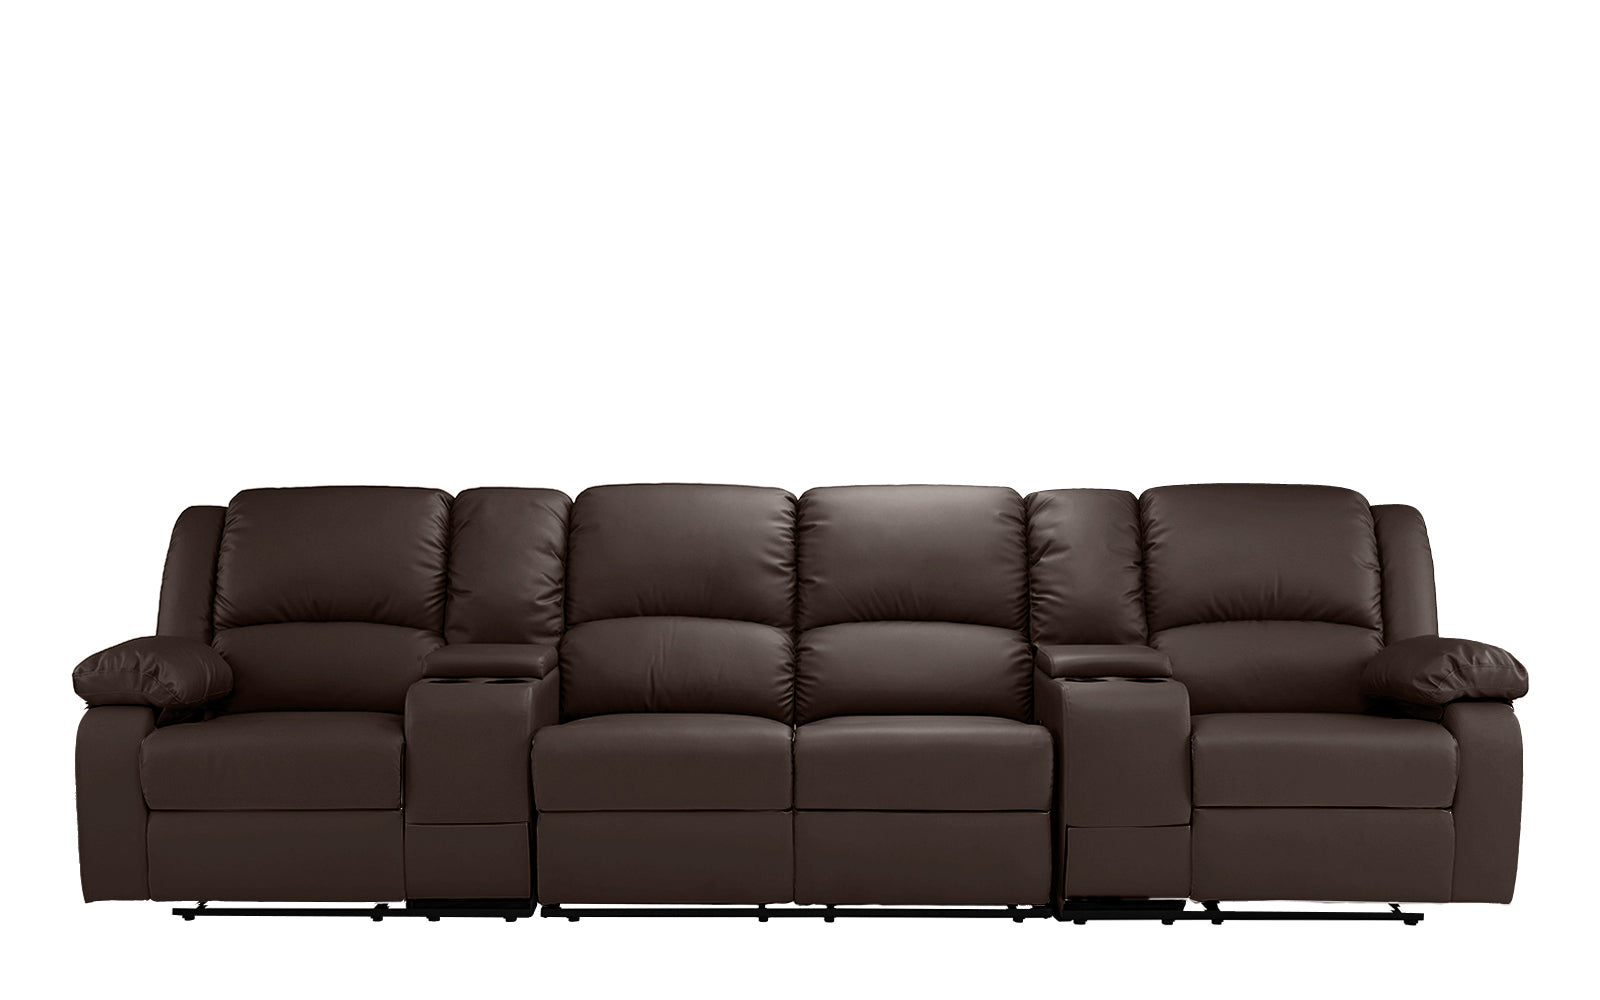 Heather 4 Seater Home Theater Recliner Sofa